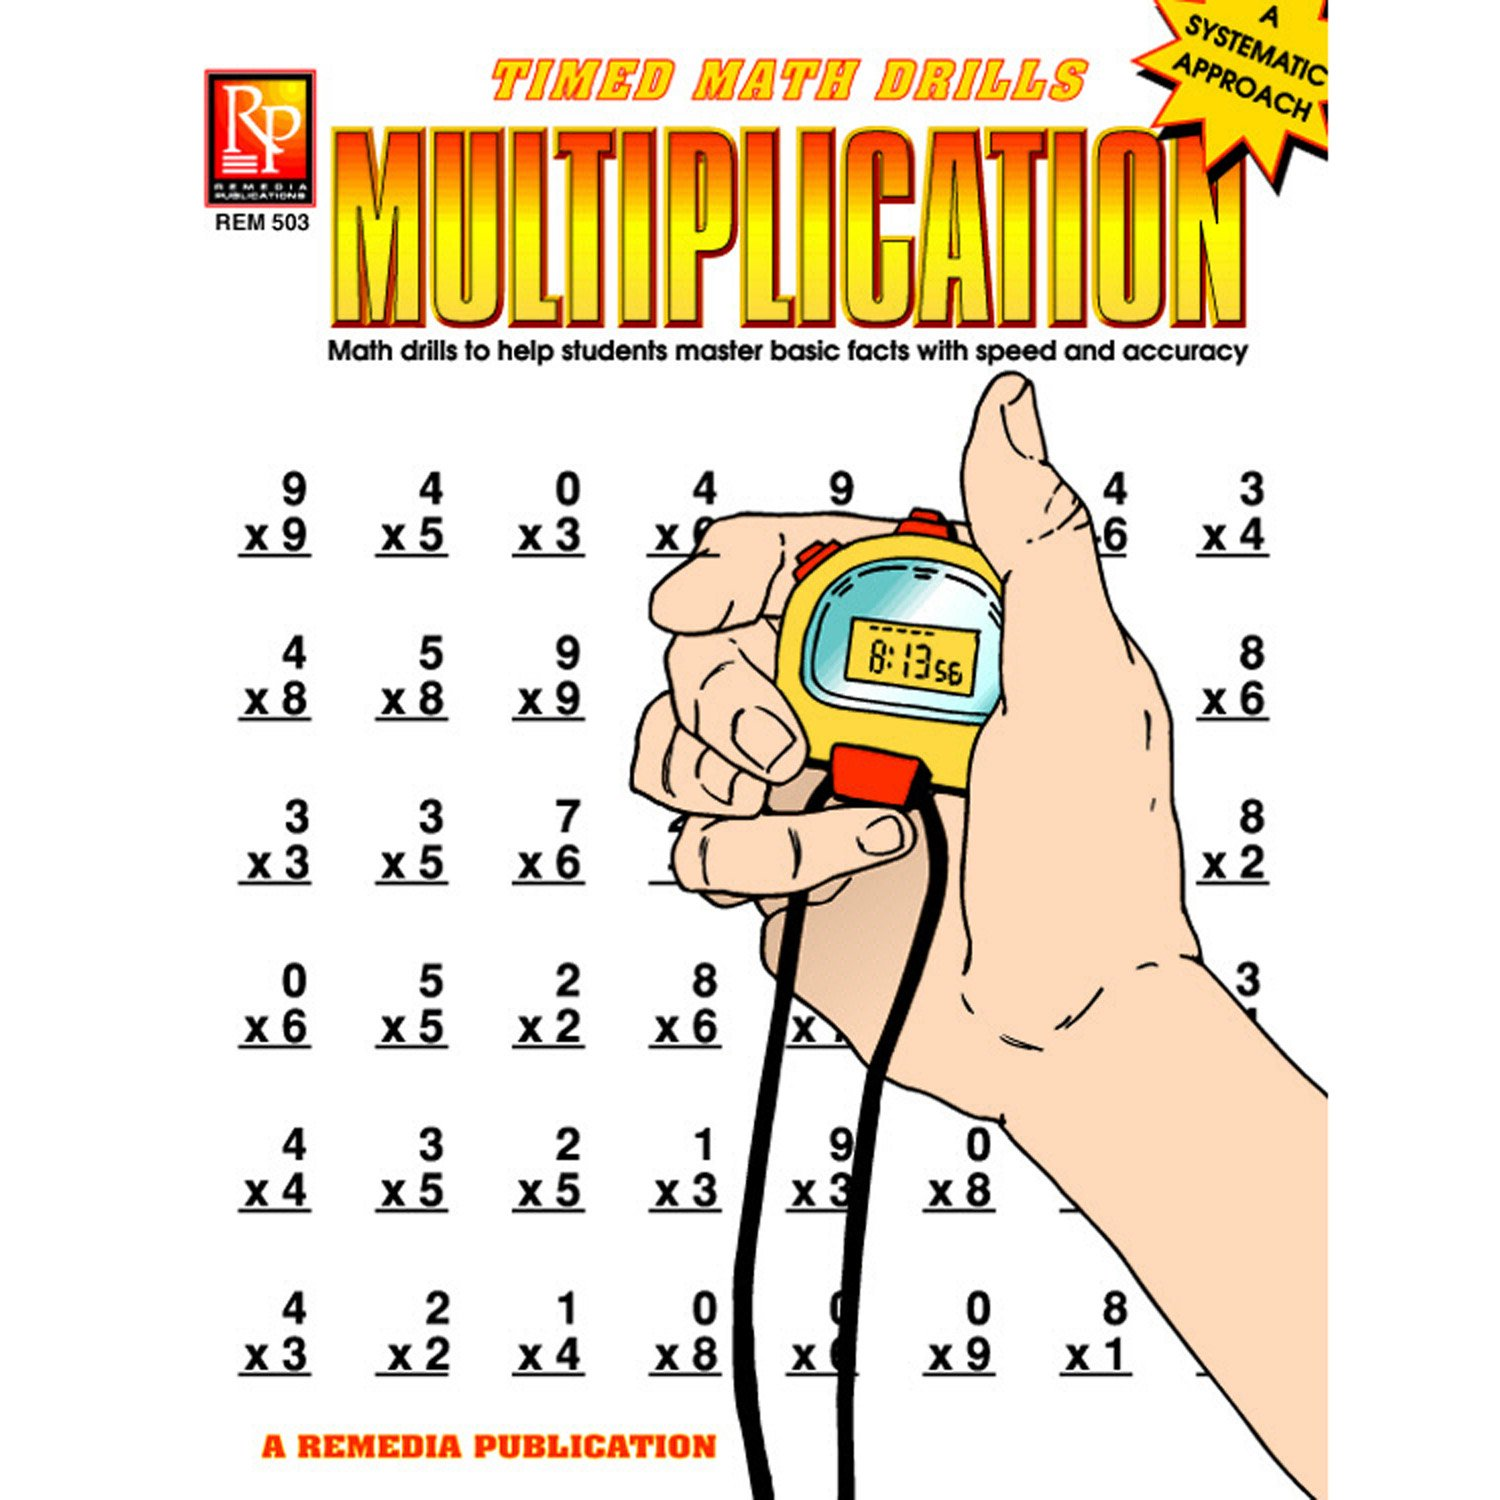 Remedia Publications REM503 Multiplication Timed Math Drills Book ...